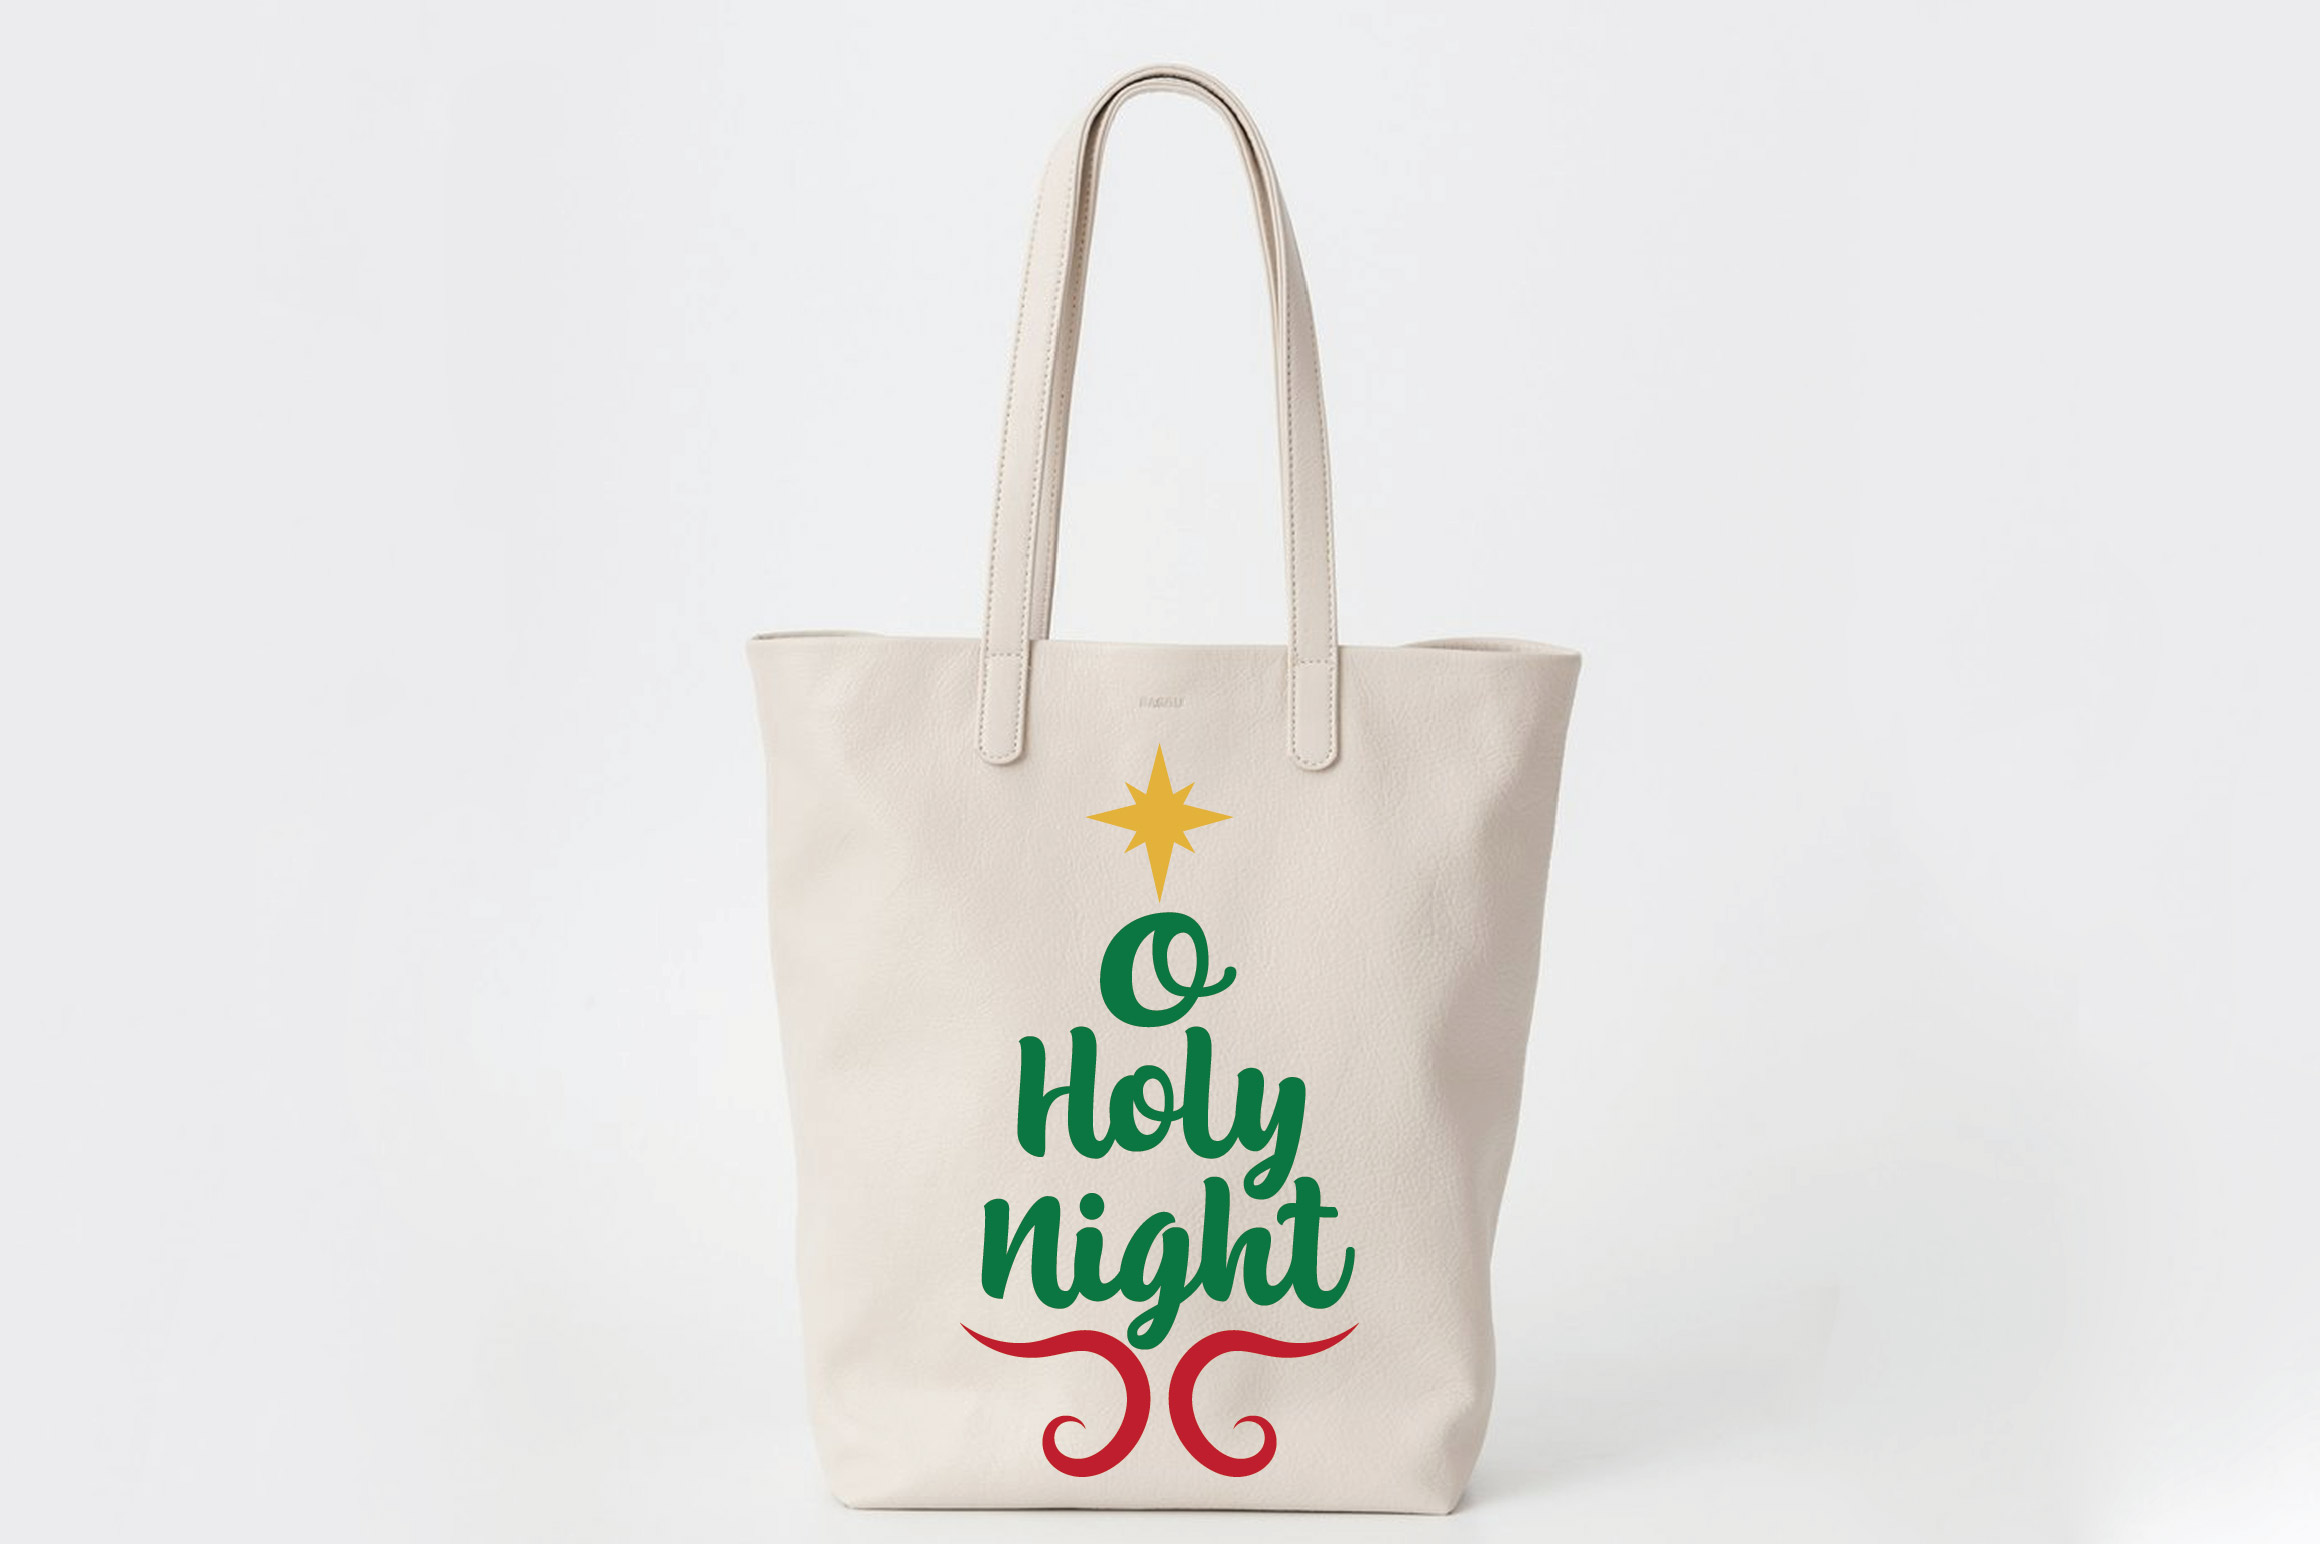 O Holy Night SVG Cut File - Christmas SVG - DXF - PNG - EPS example image 8